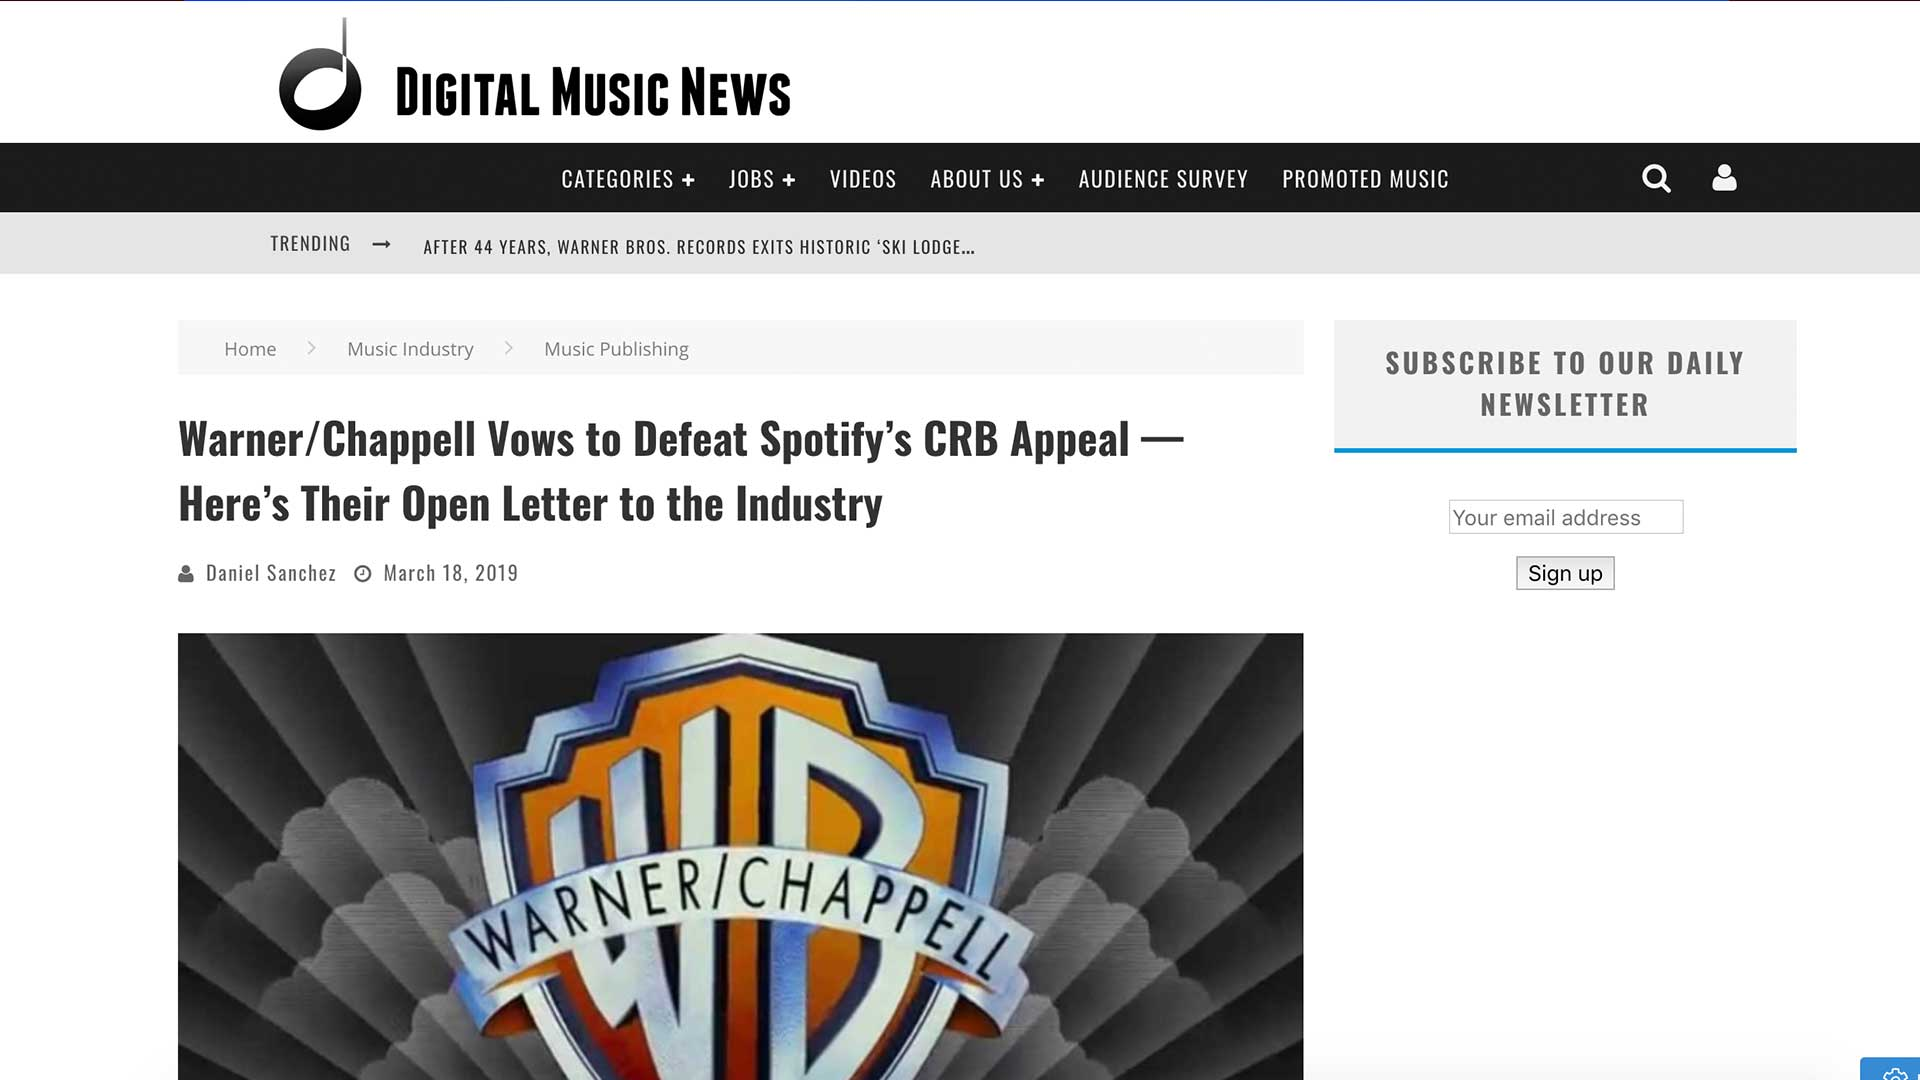 Fairness Rocks News Warner/Chappell Vows to Defeat Spotify's CRB Appeal — Here's Their Open Letter to the Industry